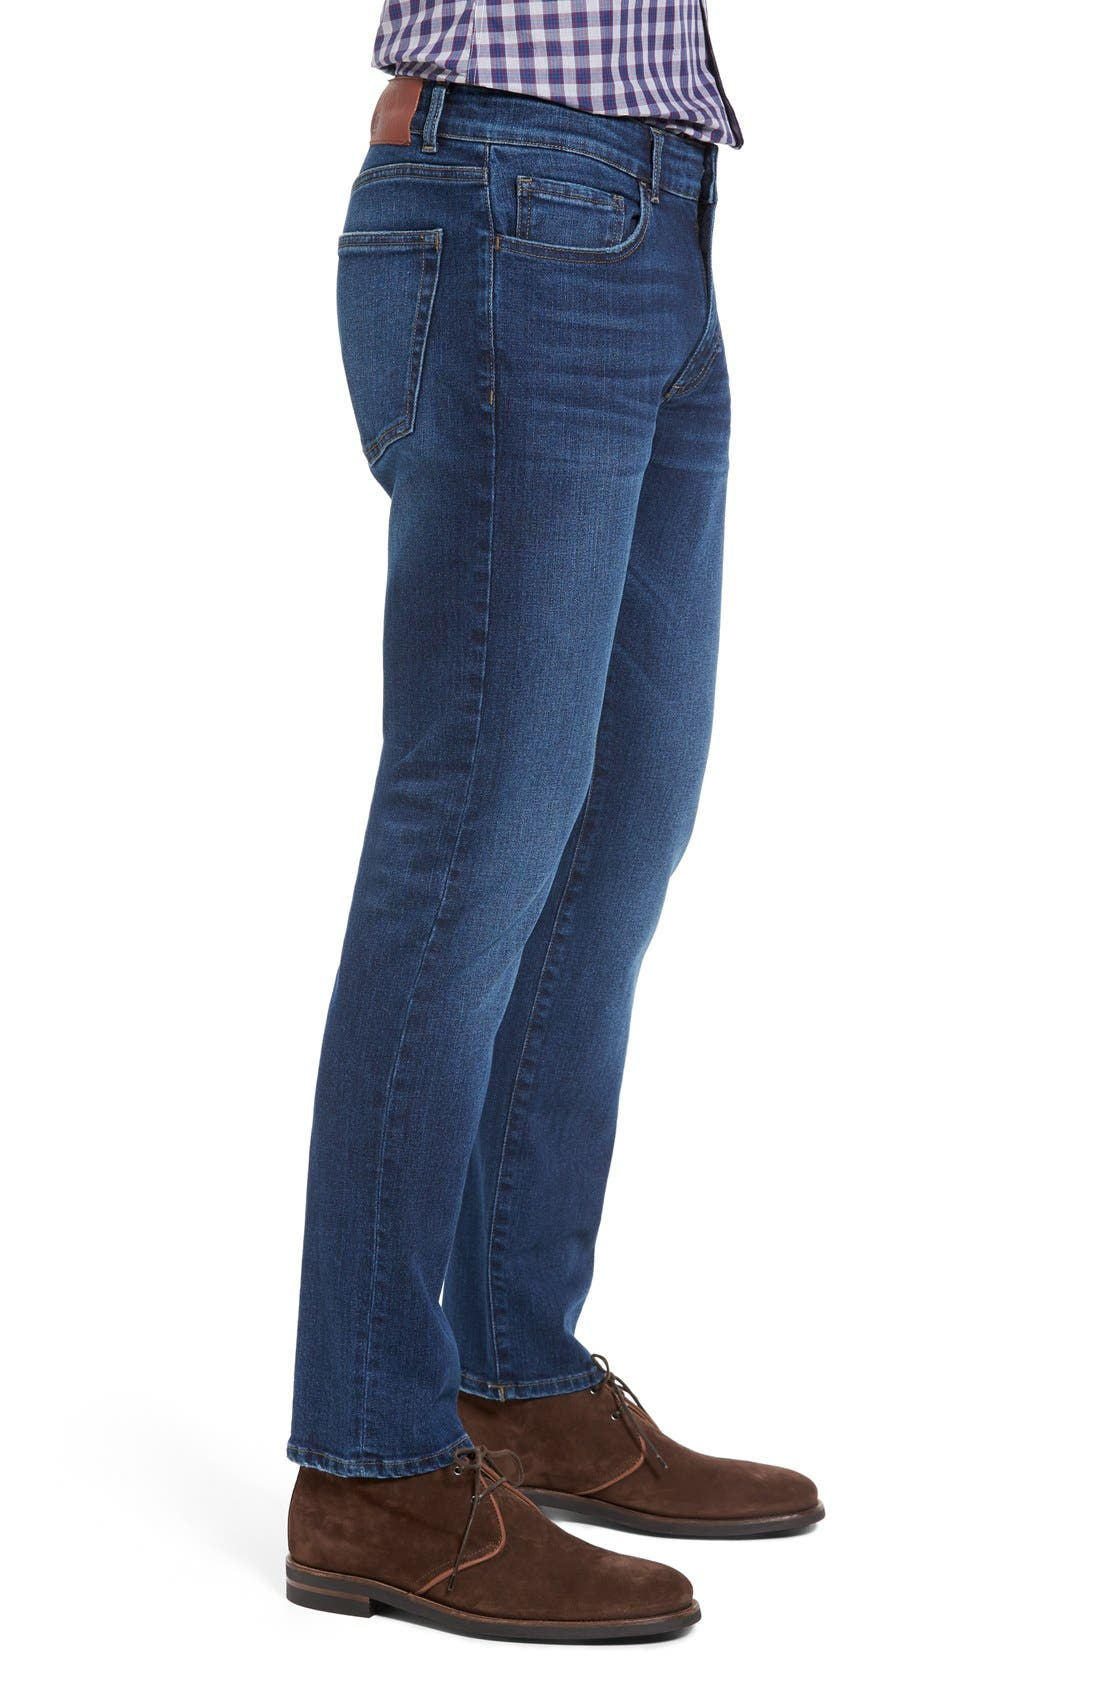 Russel Slim Straight Fit Jeans,                             Alternate thumbnail 4, color,                             405